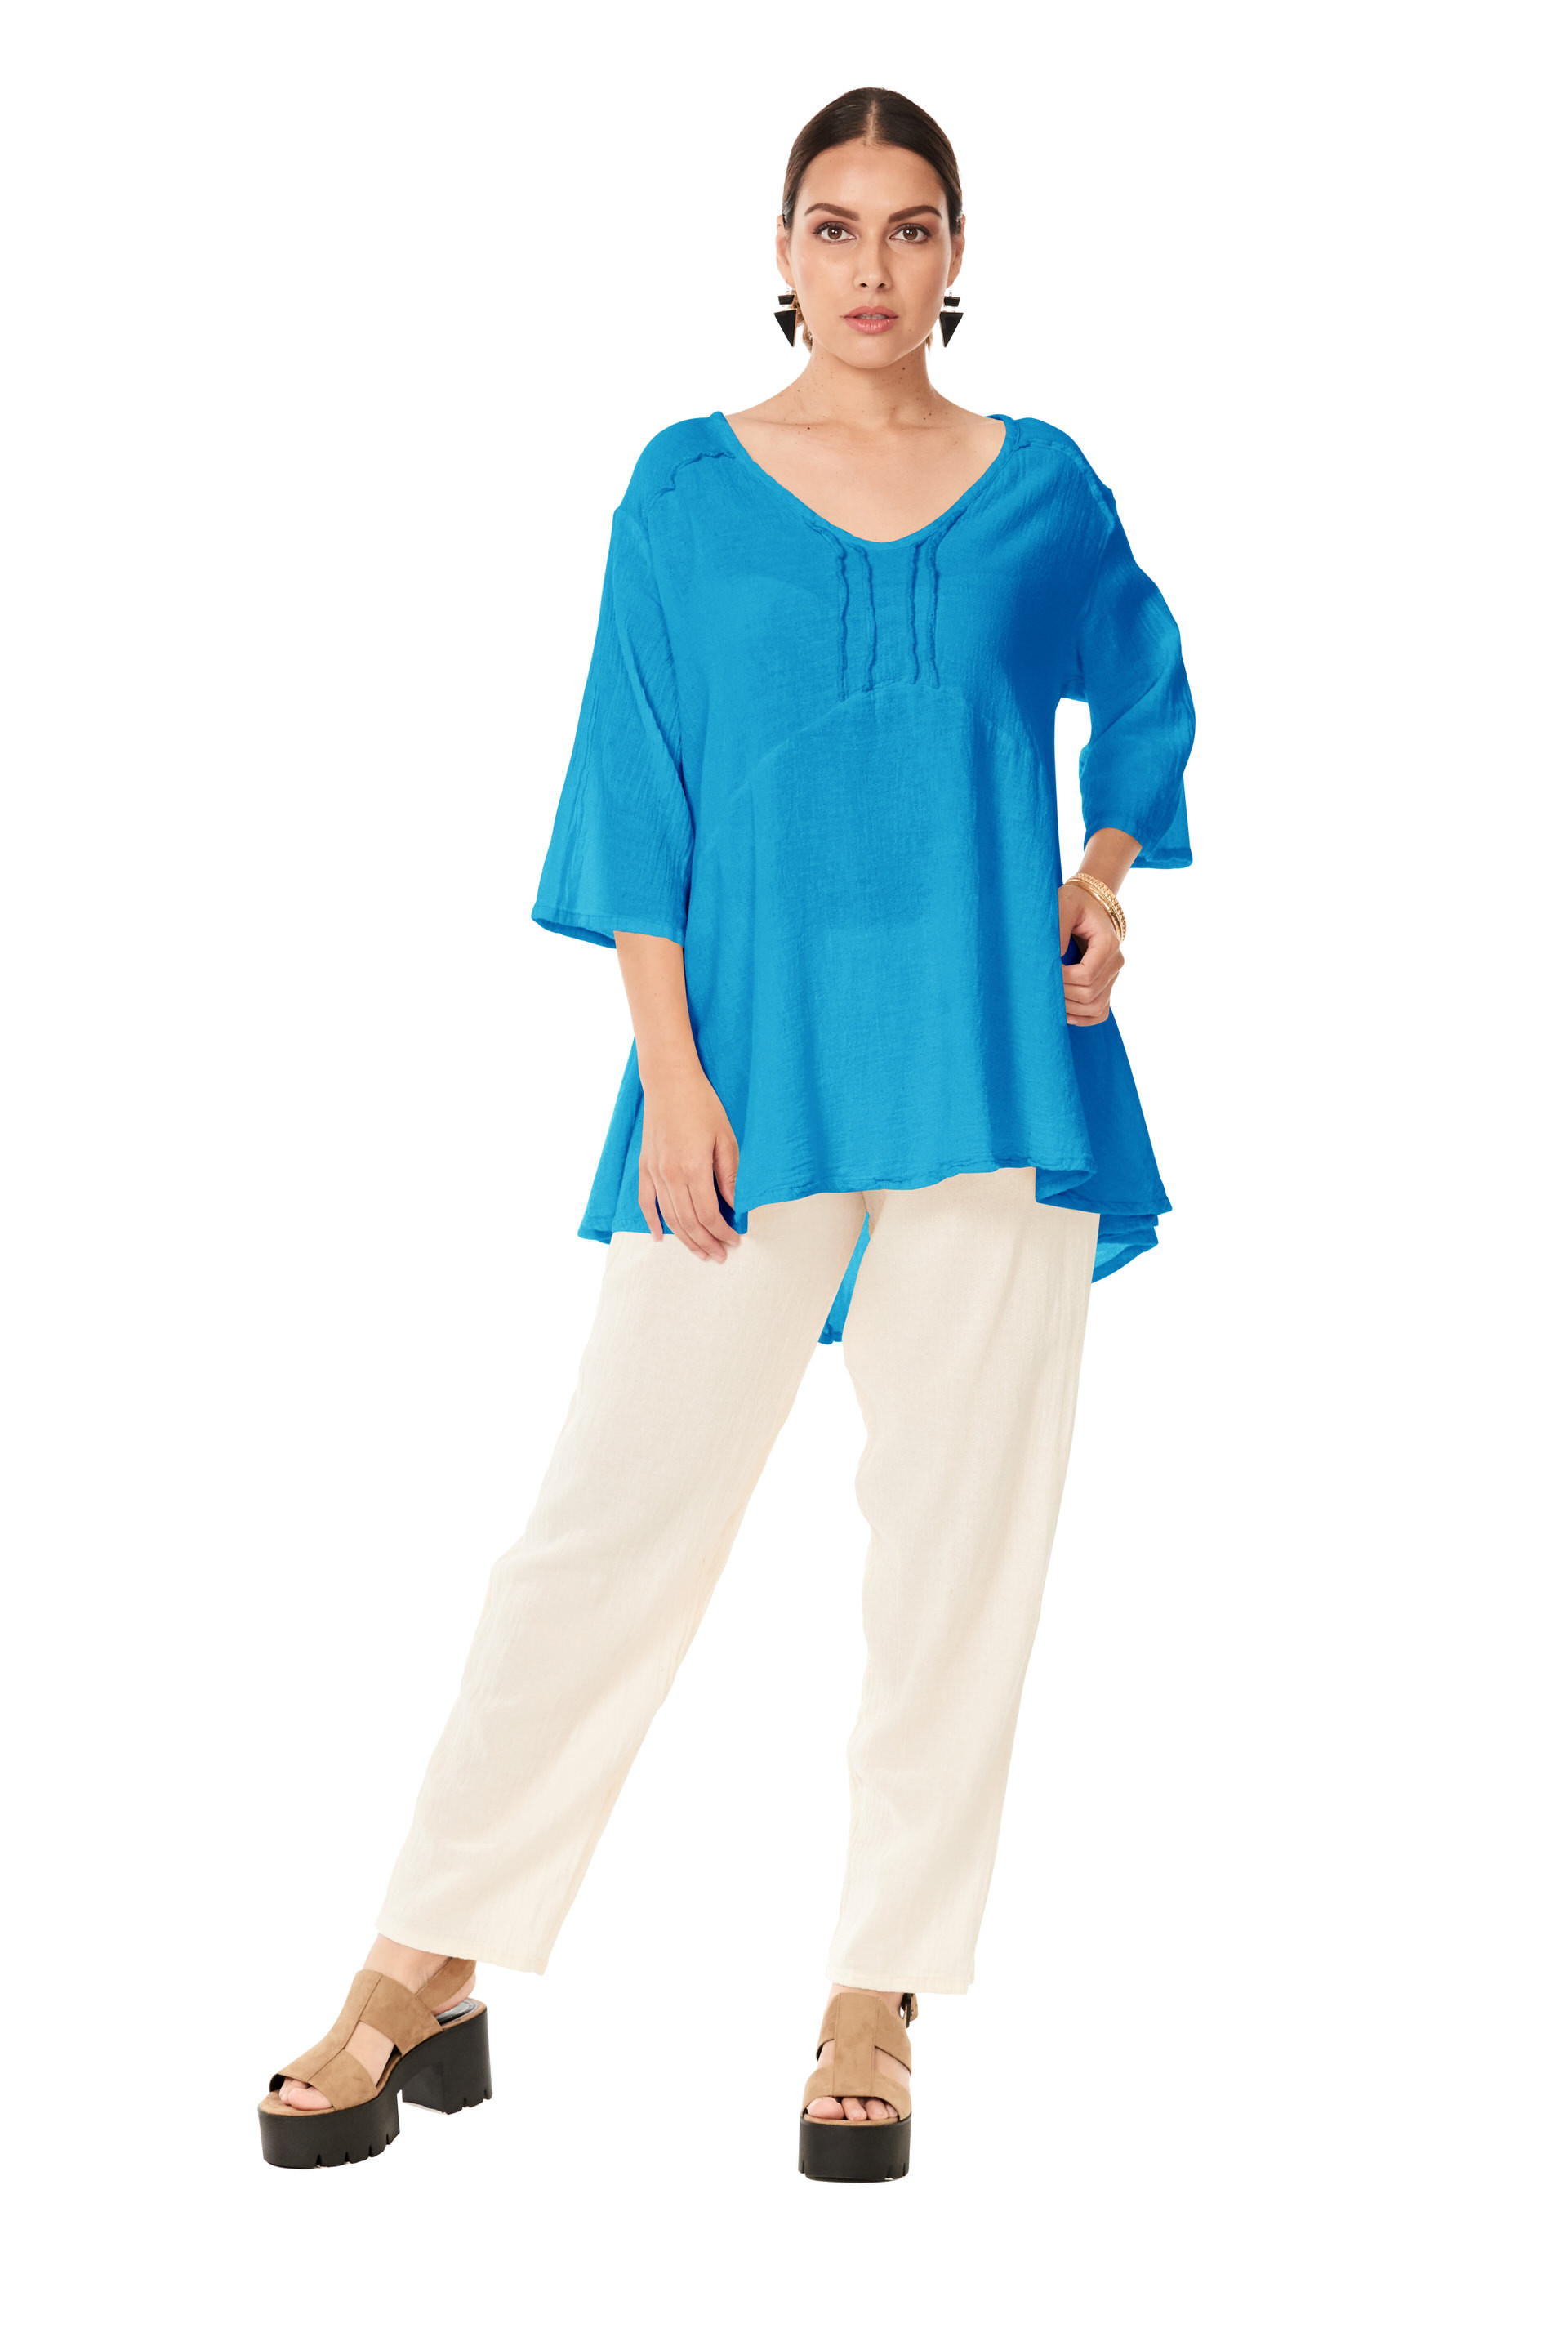 OMG - A three quarter sleeve cotton gauze top with front and back piping stitch detail, and an asymmetrical flowy hemline.